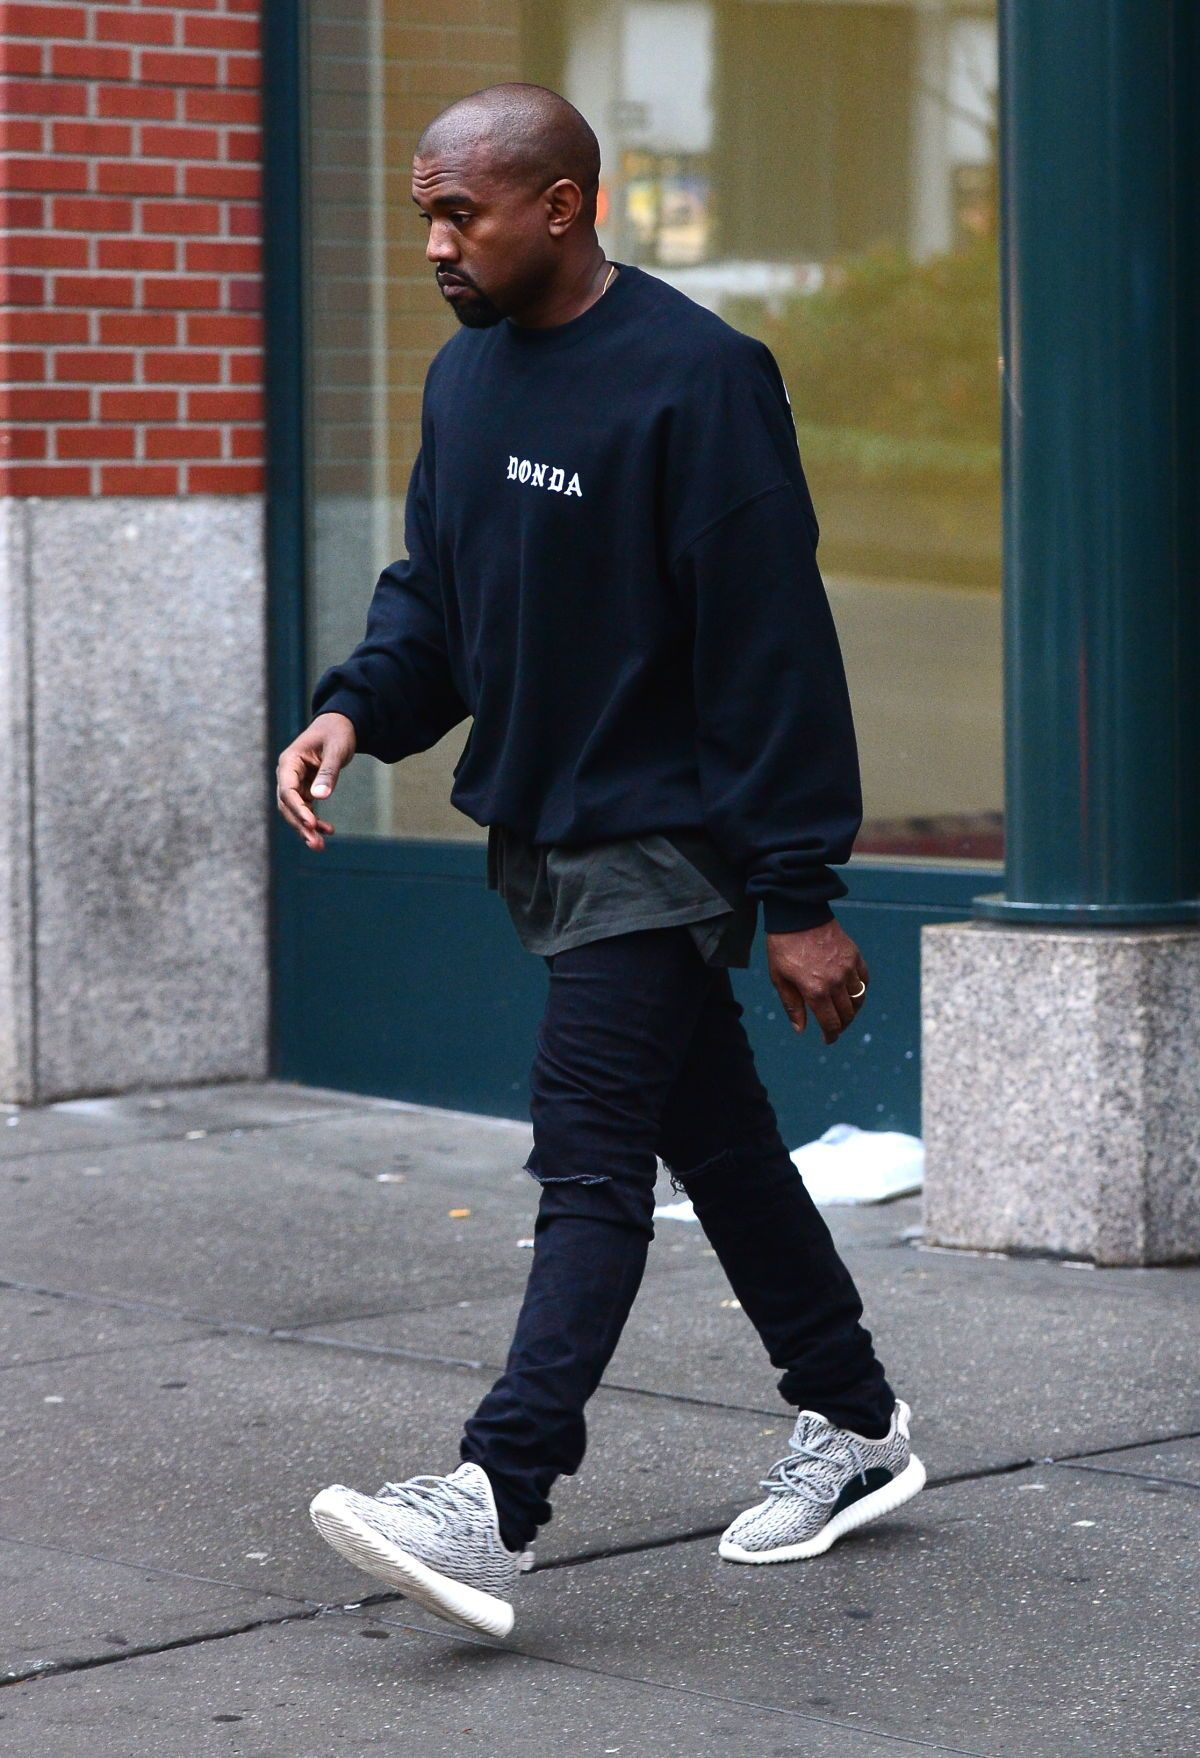 Mtvstyle Let S All Freak Out Over The New Yeezy Boost 350 Sneakers Kanye Fashion Kanye West Outfits Kanye West Style